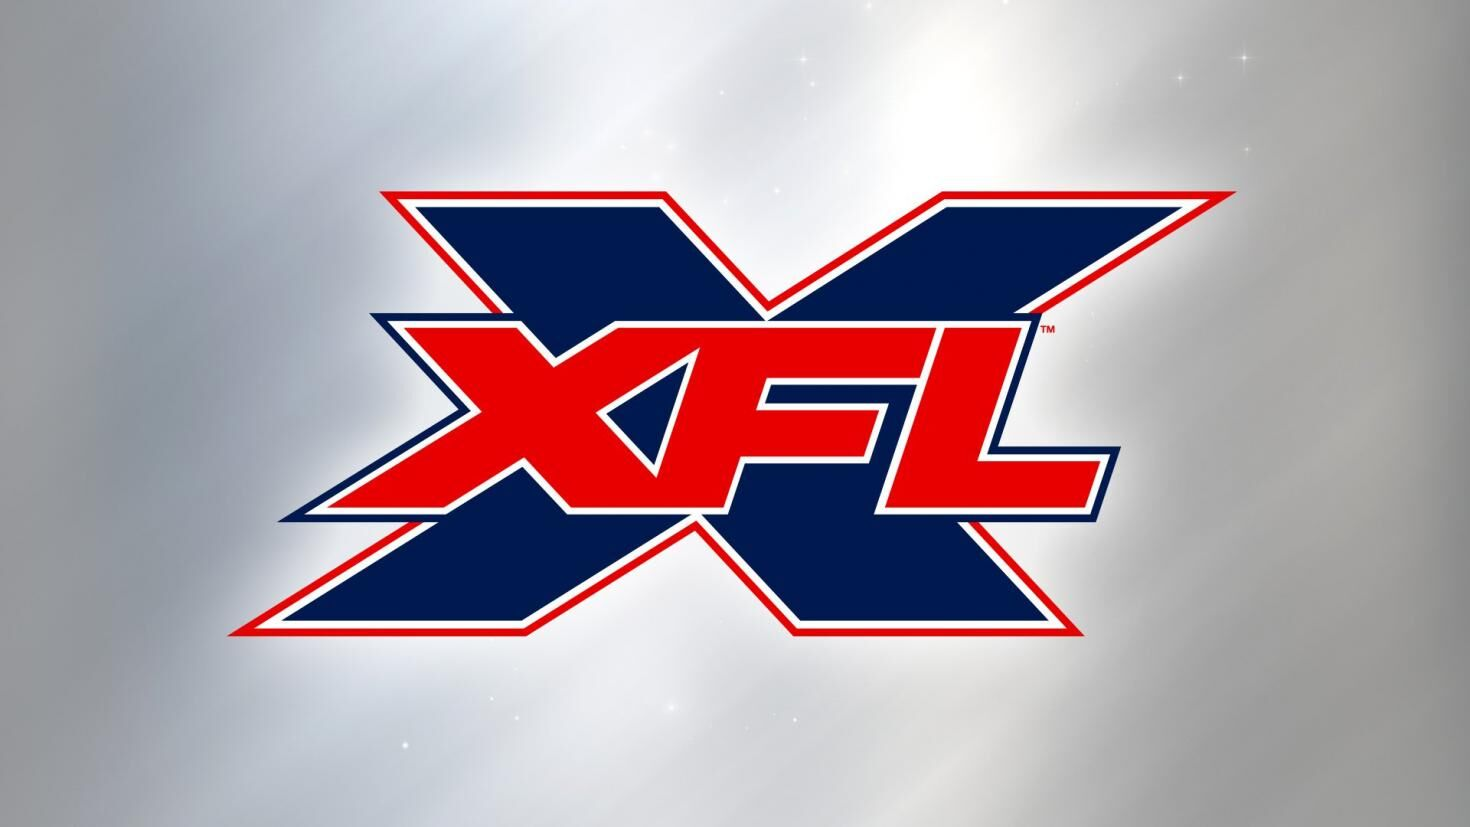 XFL gains legitimacy by hiring Oliver Luck as commissioner